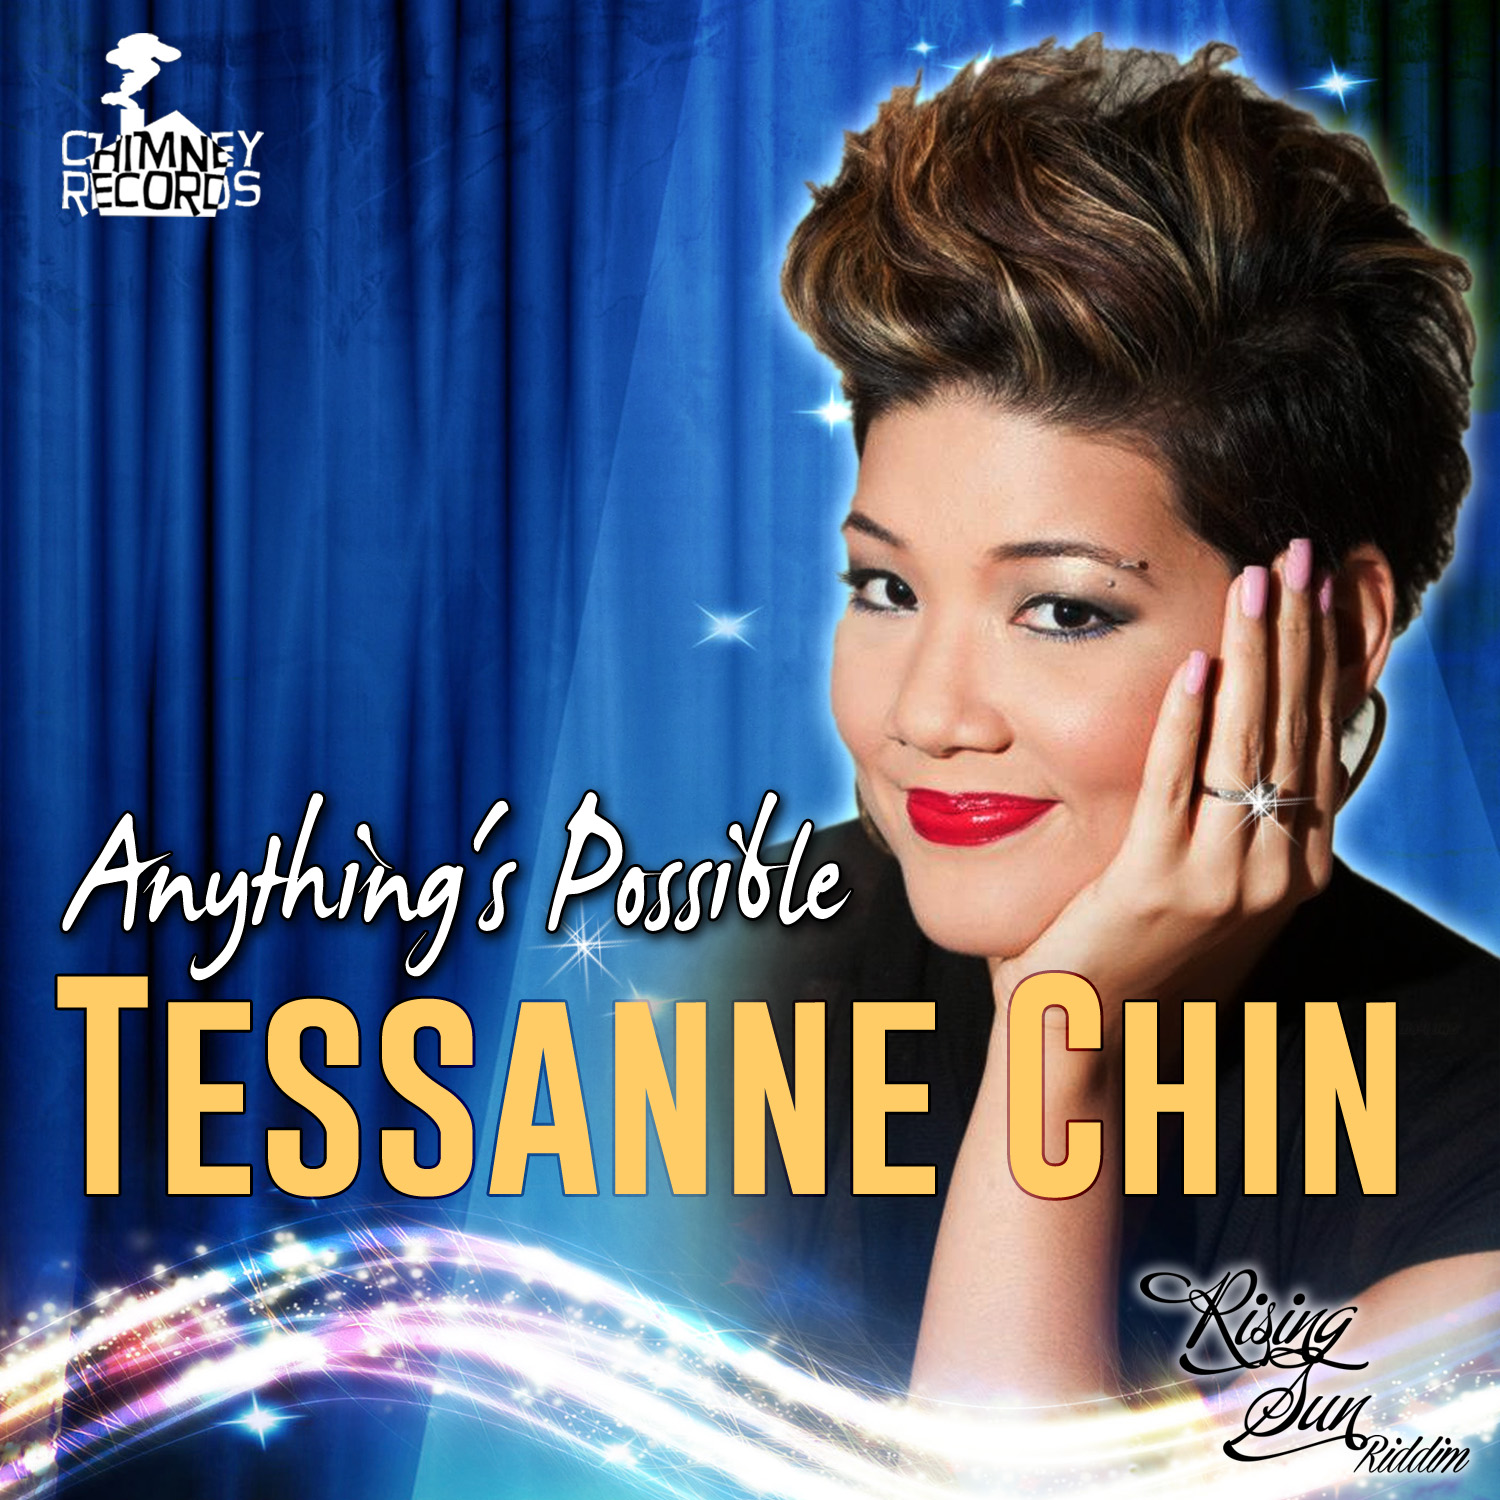 tessanne-chin-anythings-possible-rising-sun-riddim-chimney-records-Cover